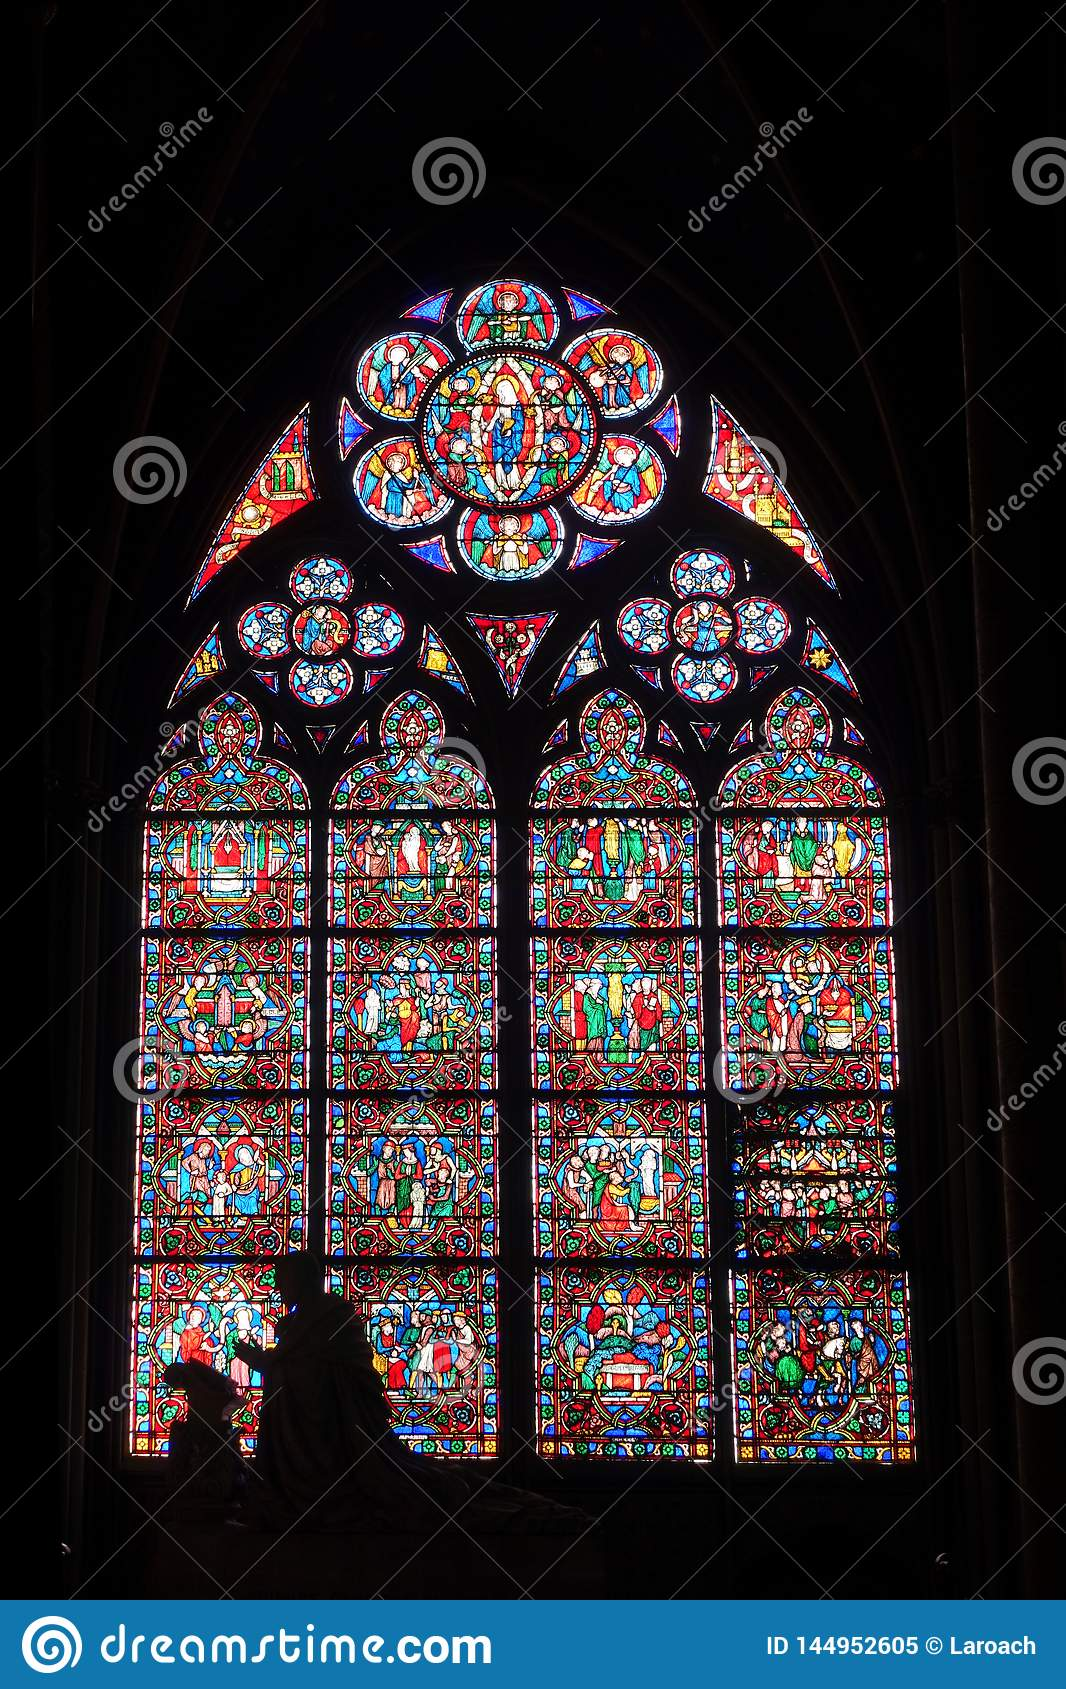 Stained Glass Window with Silhouette Interior Notre Dame Cathedral